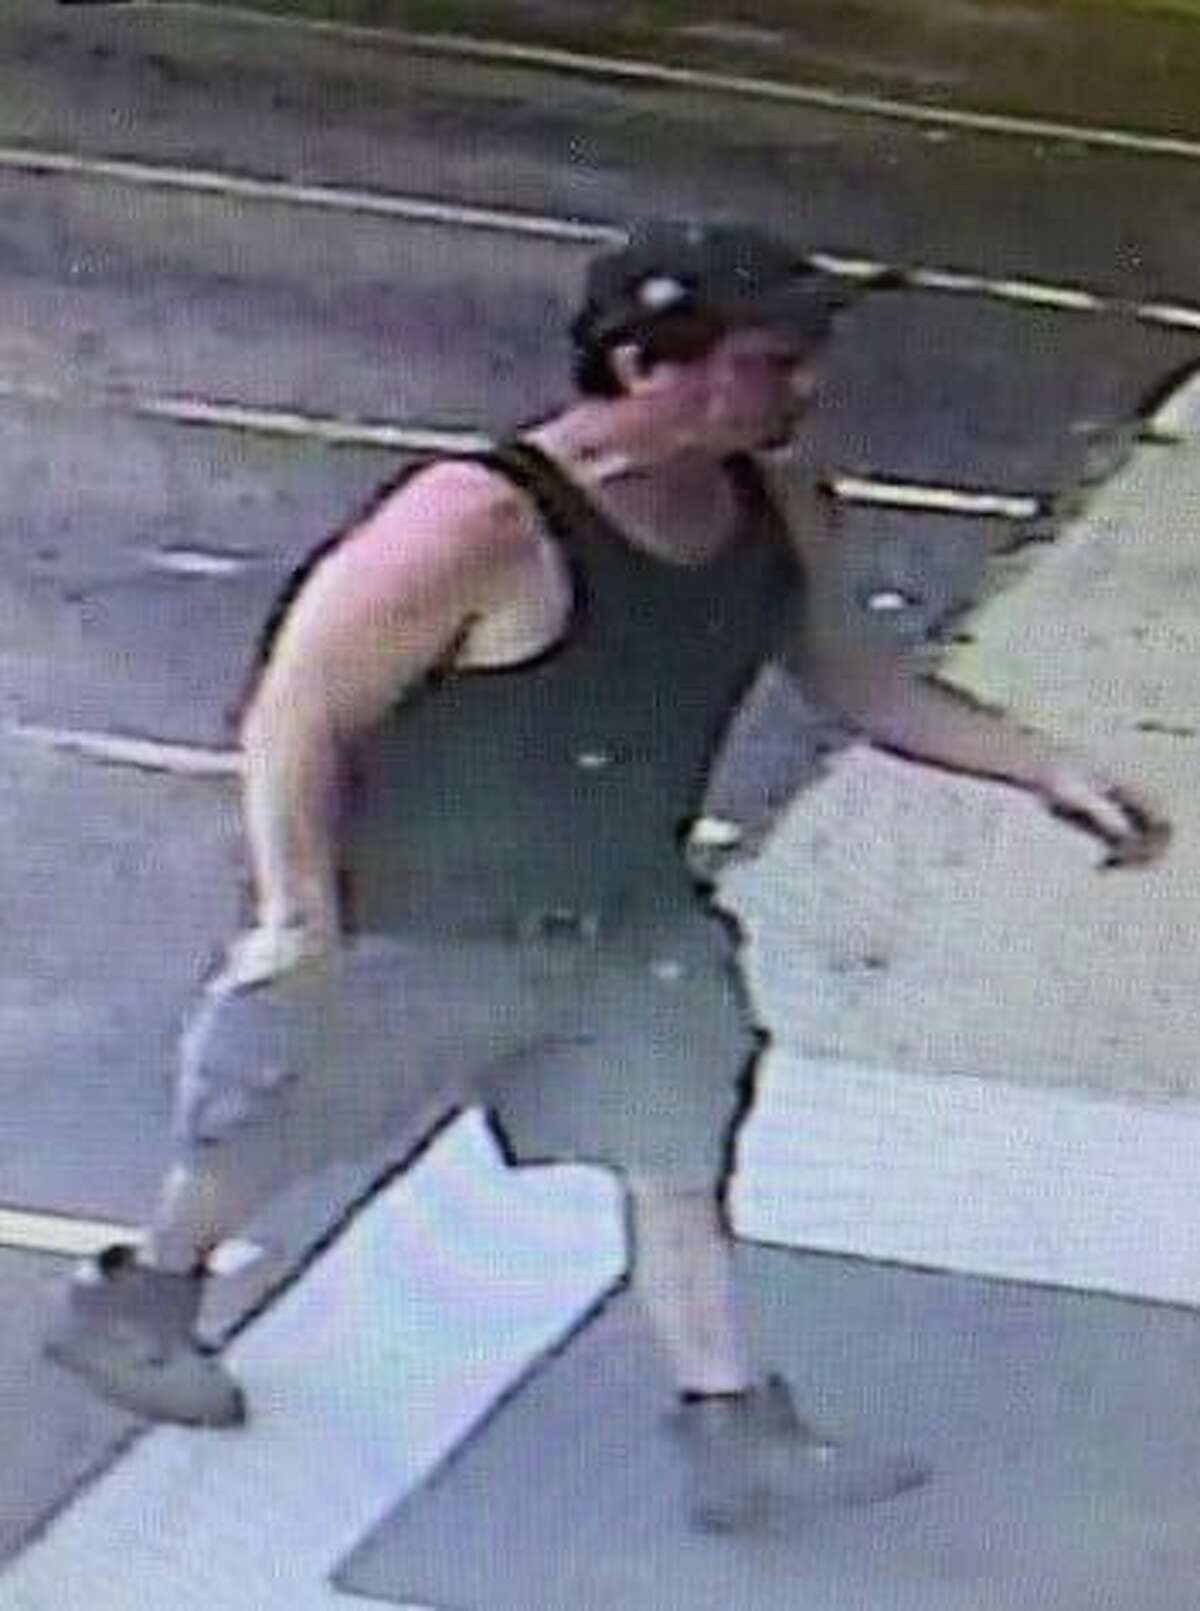 The suspect in the break-in at Town Line Liquor in Torrington is described as around 5-feet, 10-inches to 6-feet tall and has a stocky build.